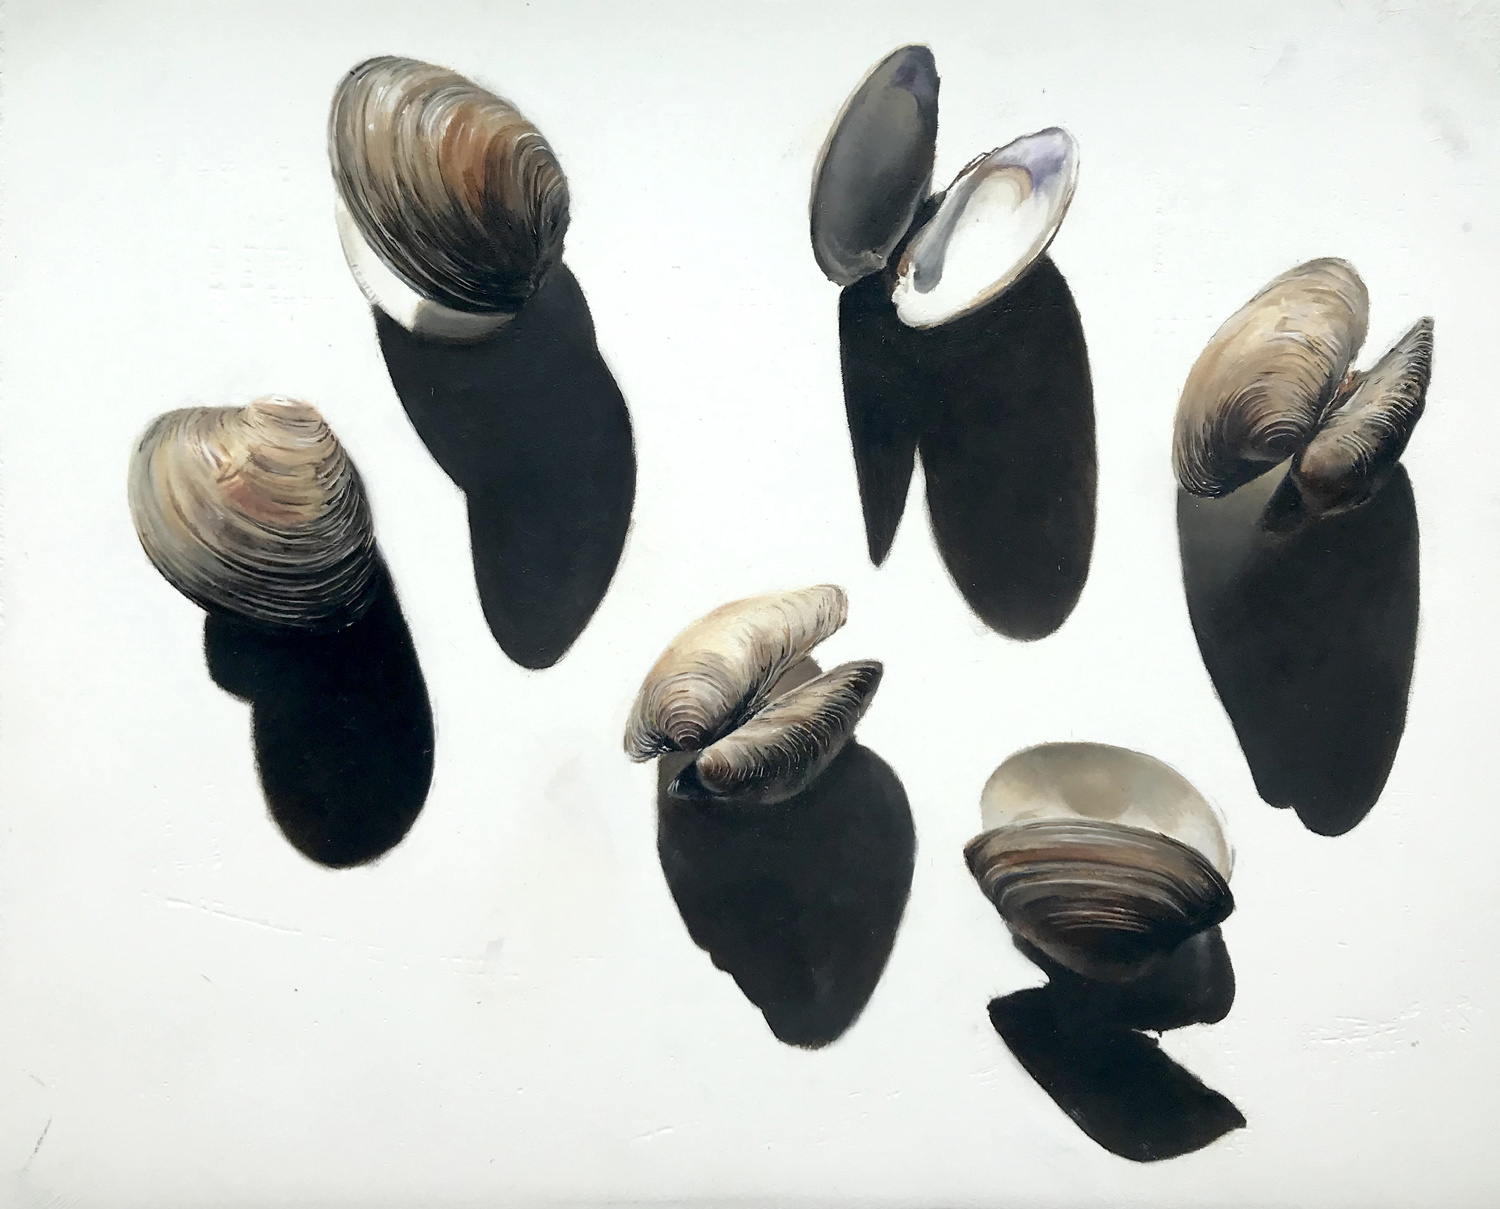 Clam Shells and Their Shadows